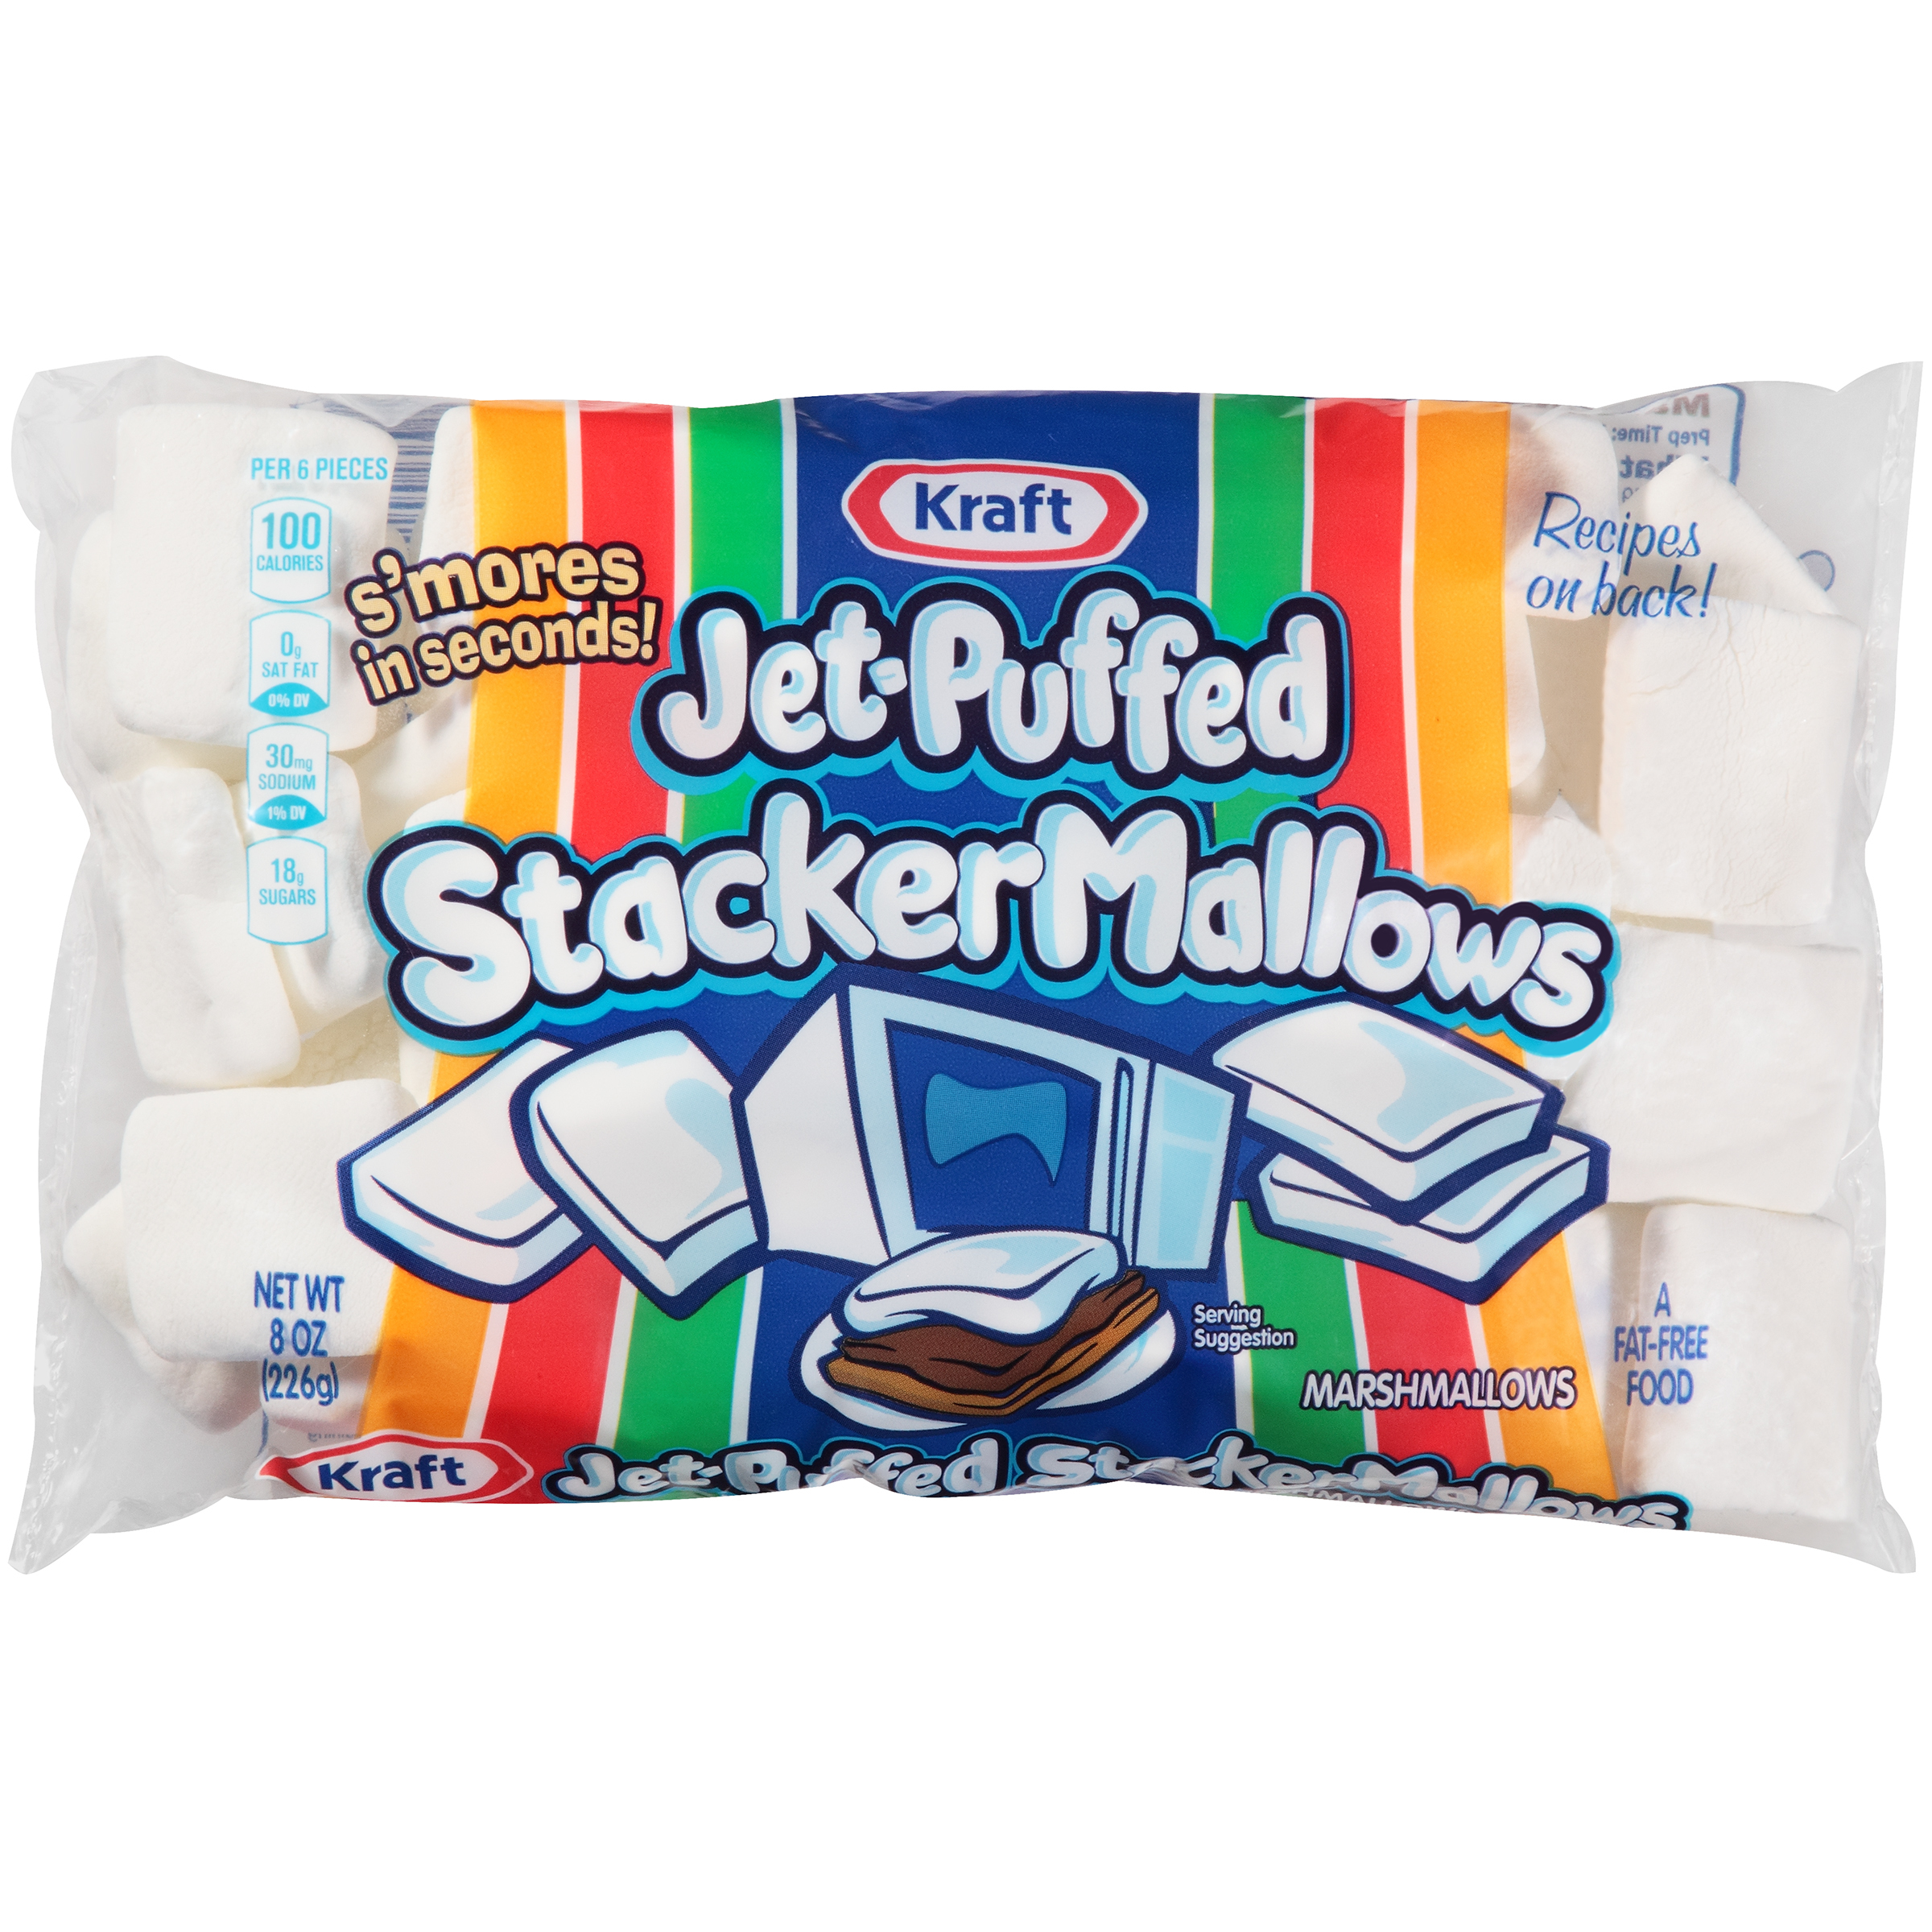 Jet-Puffed StackerMallows Marshmallows